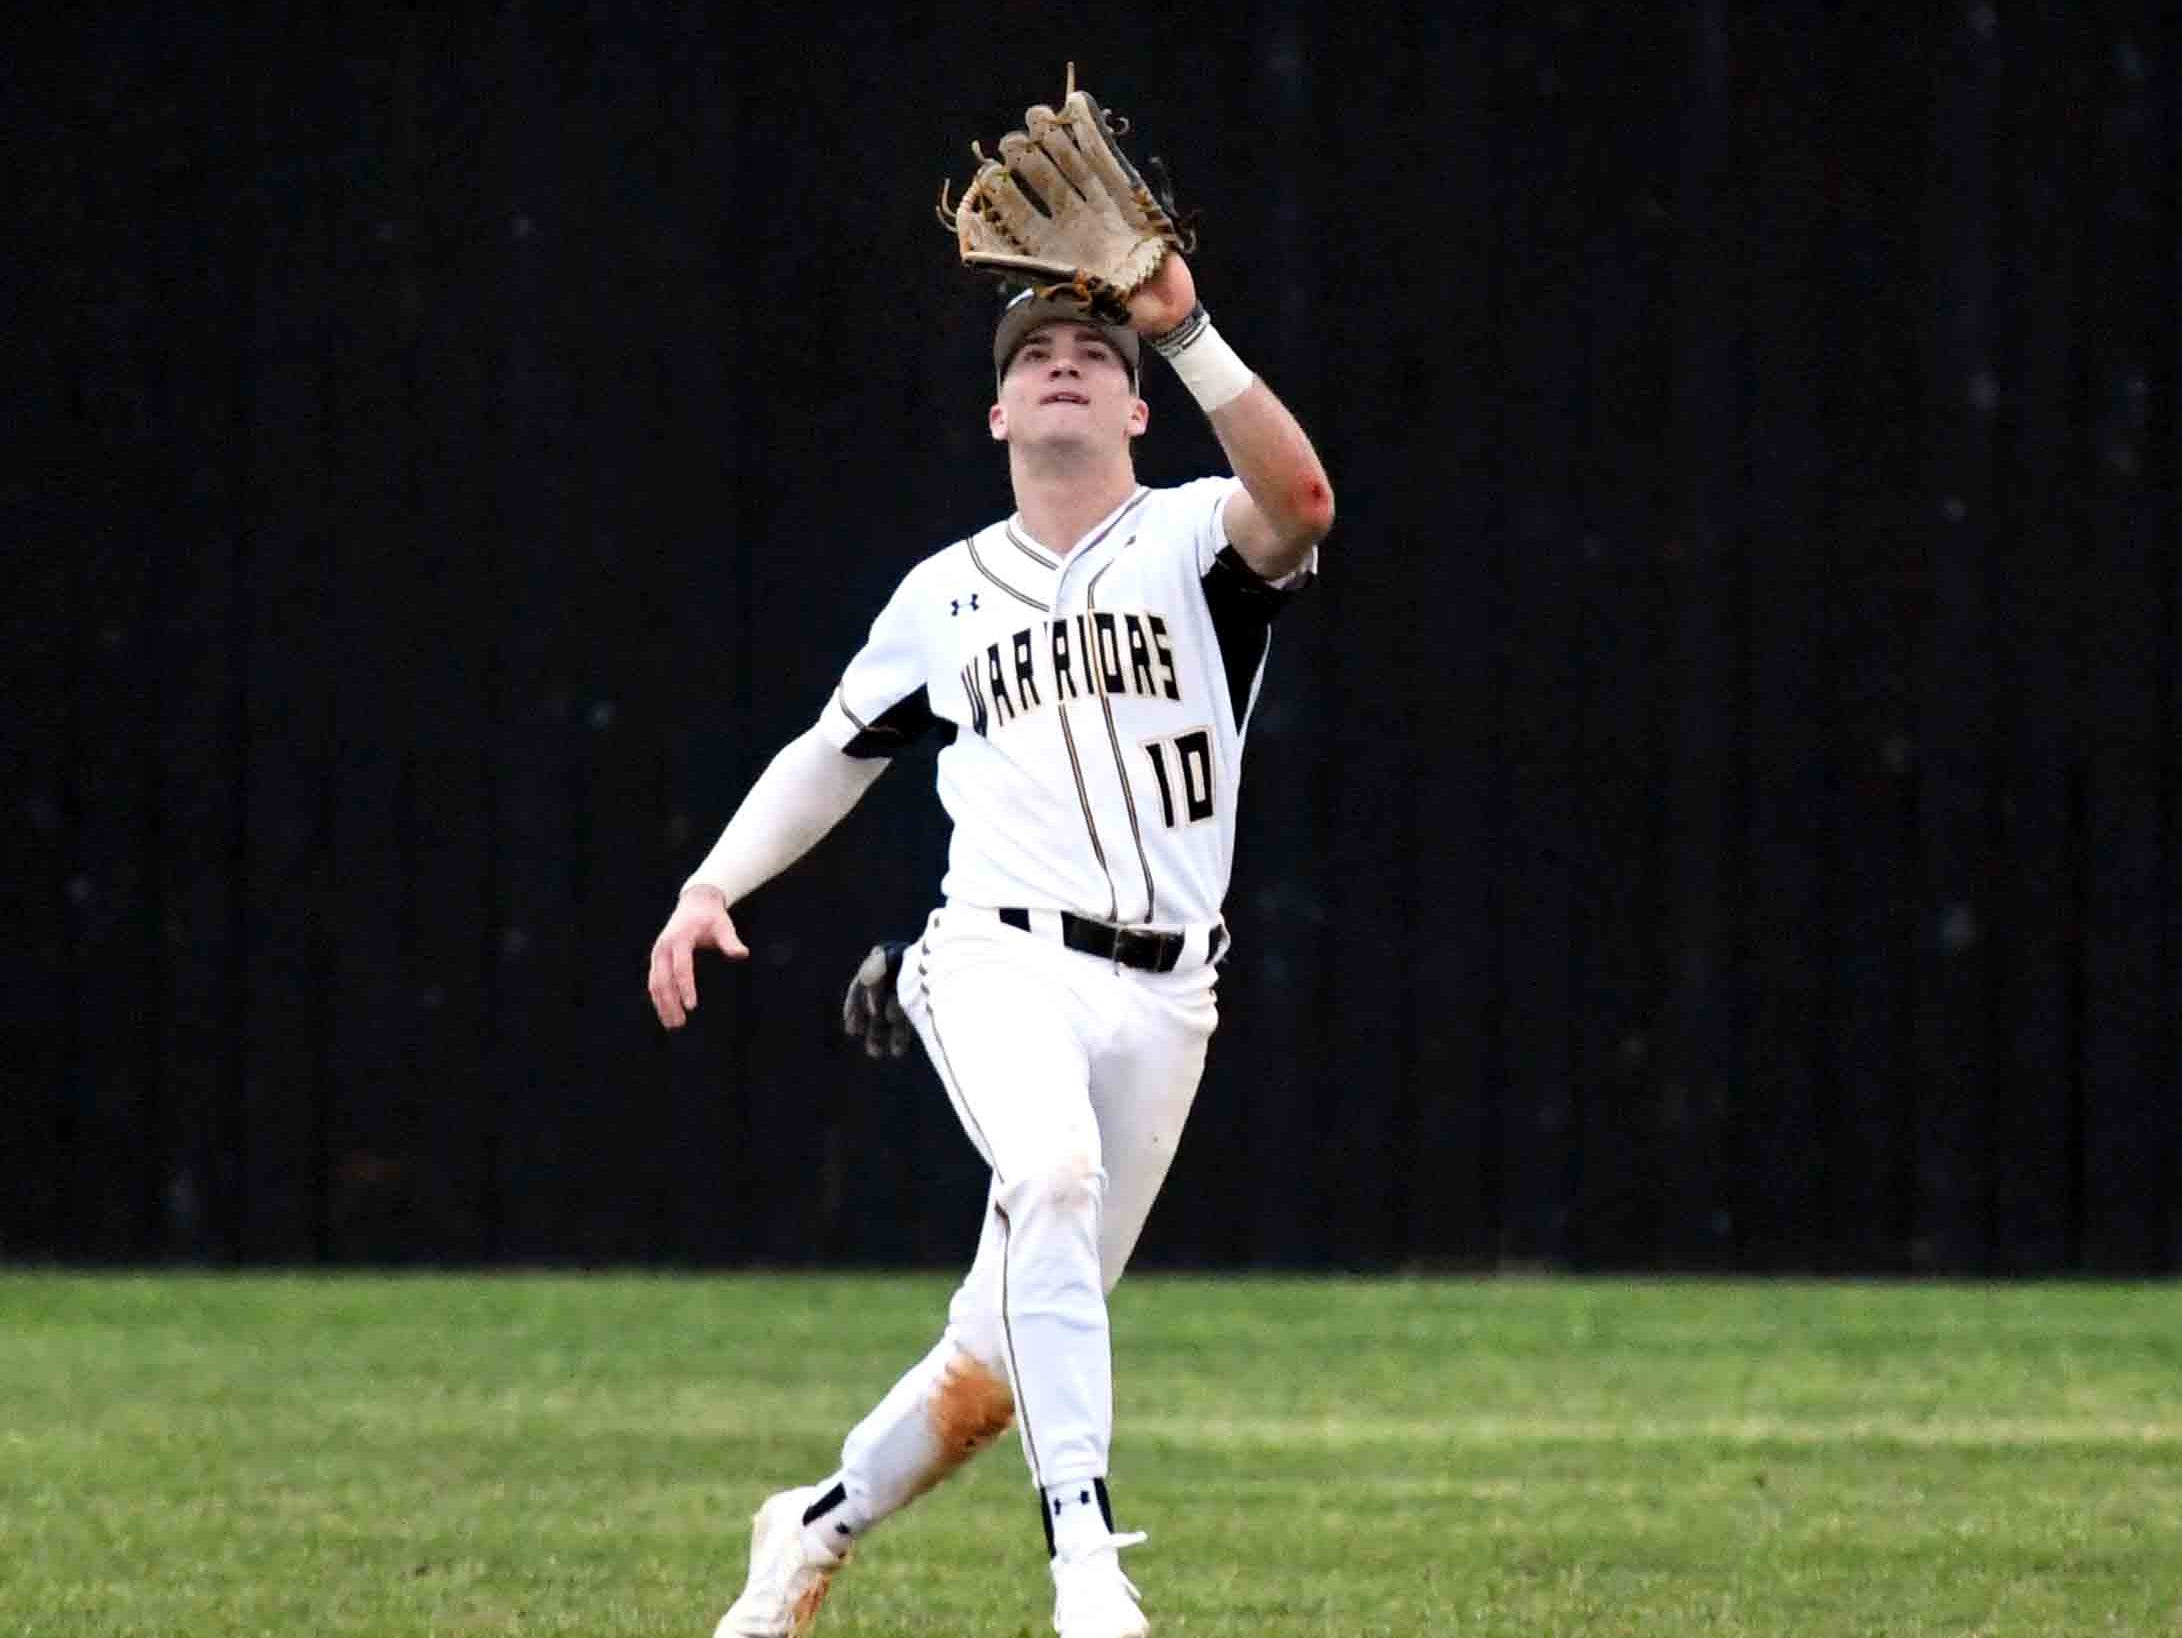 Oak Grove senior John Rhys Plumlee catches the ball in outfield in their season opener against Seminary in Hattiesburg on Monday, February 18, 2019.